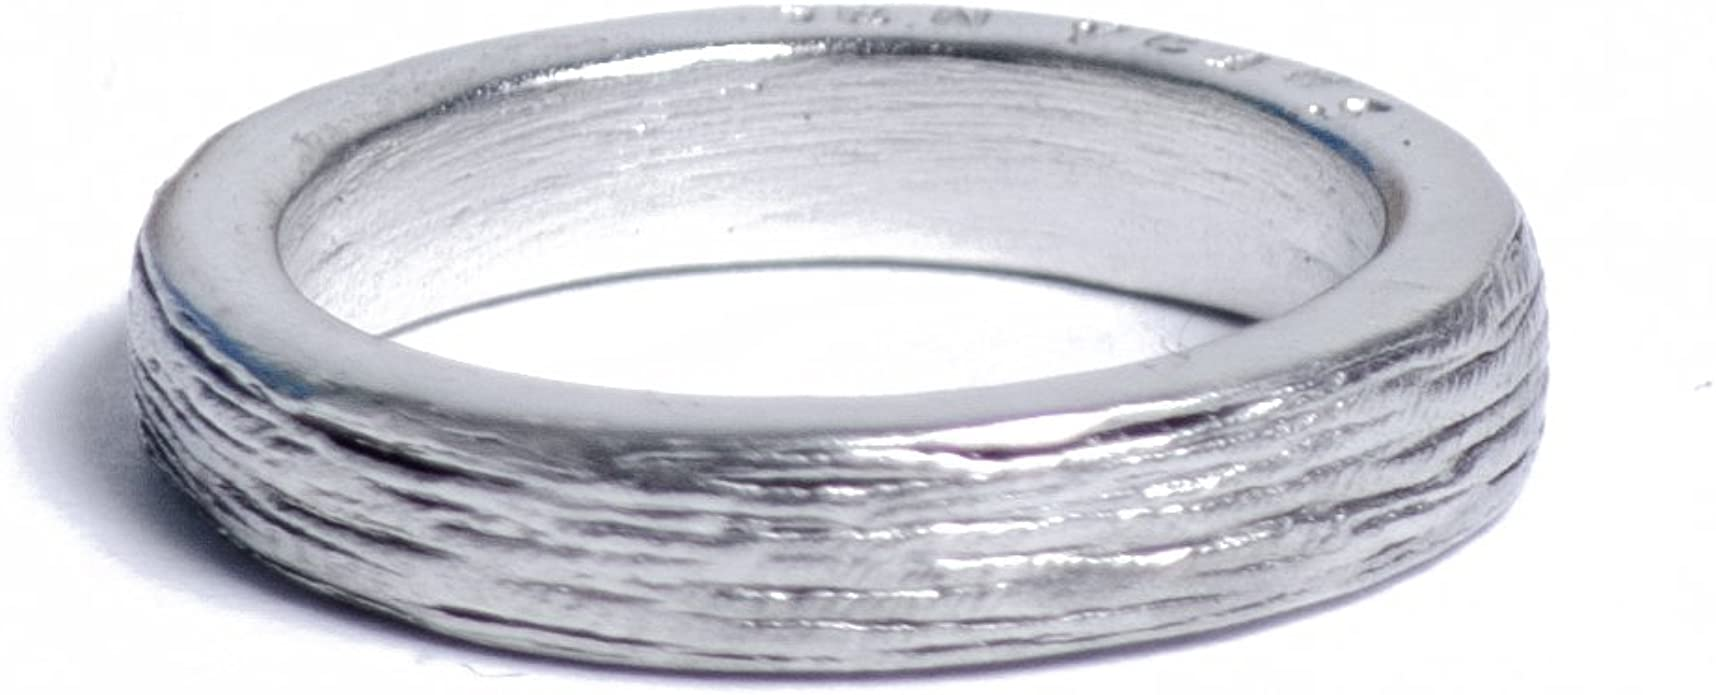 10th Anniversary Idea Ladies Tin Ring Inscribed With Ten Years